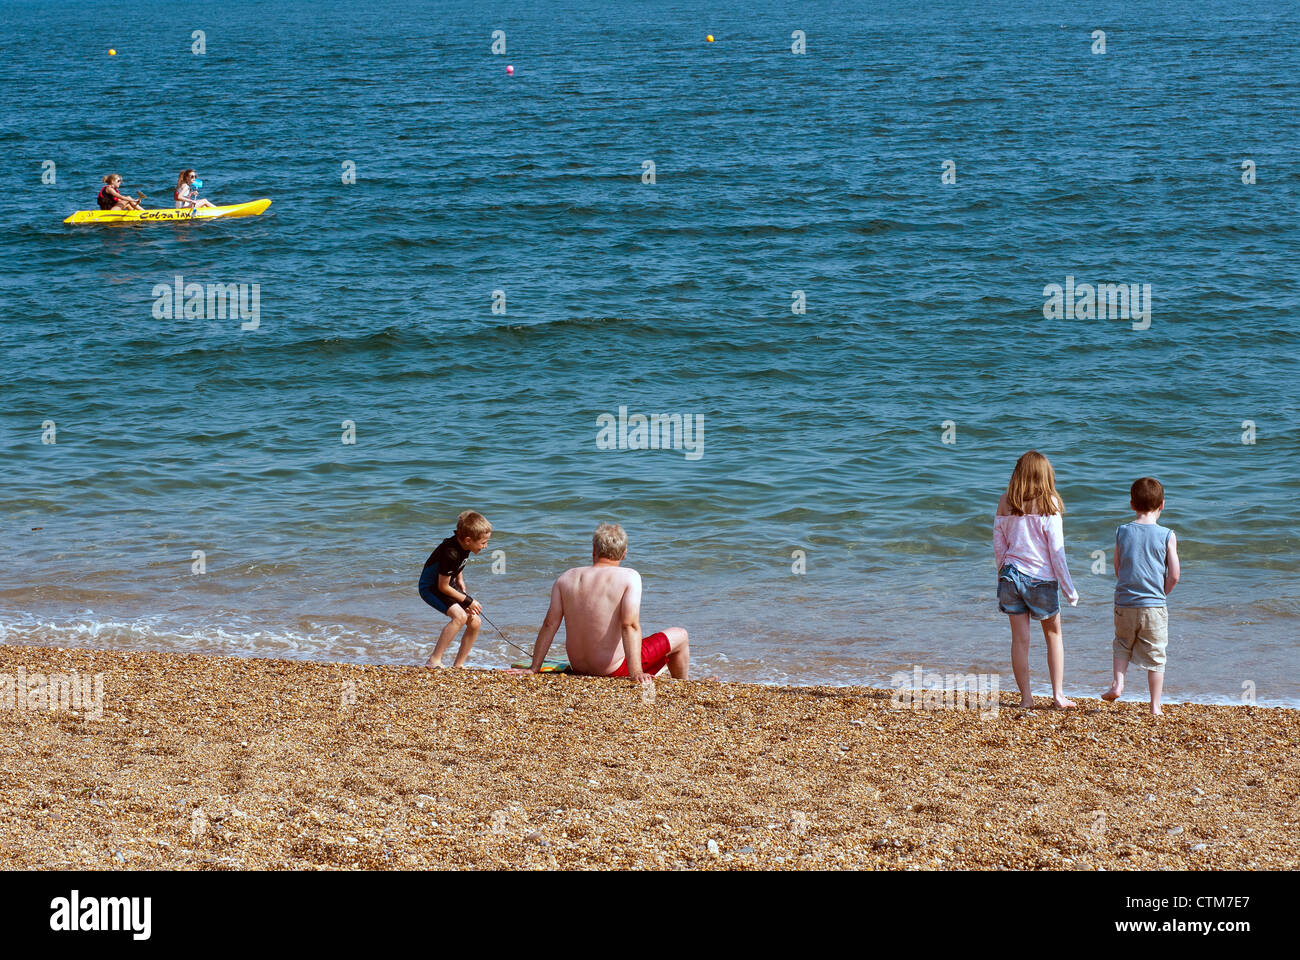 siblings paddling at Blackpool Sands, boats, coast, devon,childhood,staycation, ocean, rock, sand, sea, waves, action, - Stock Image